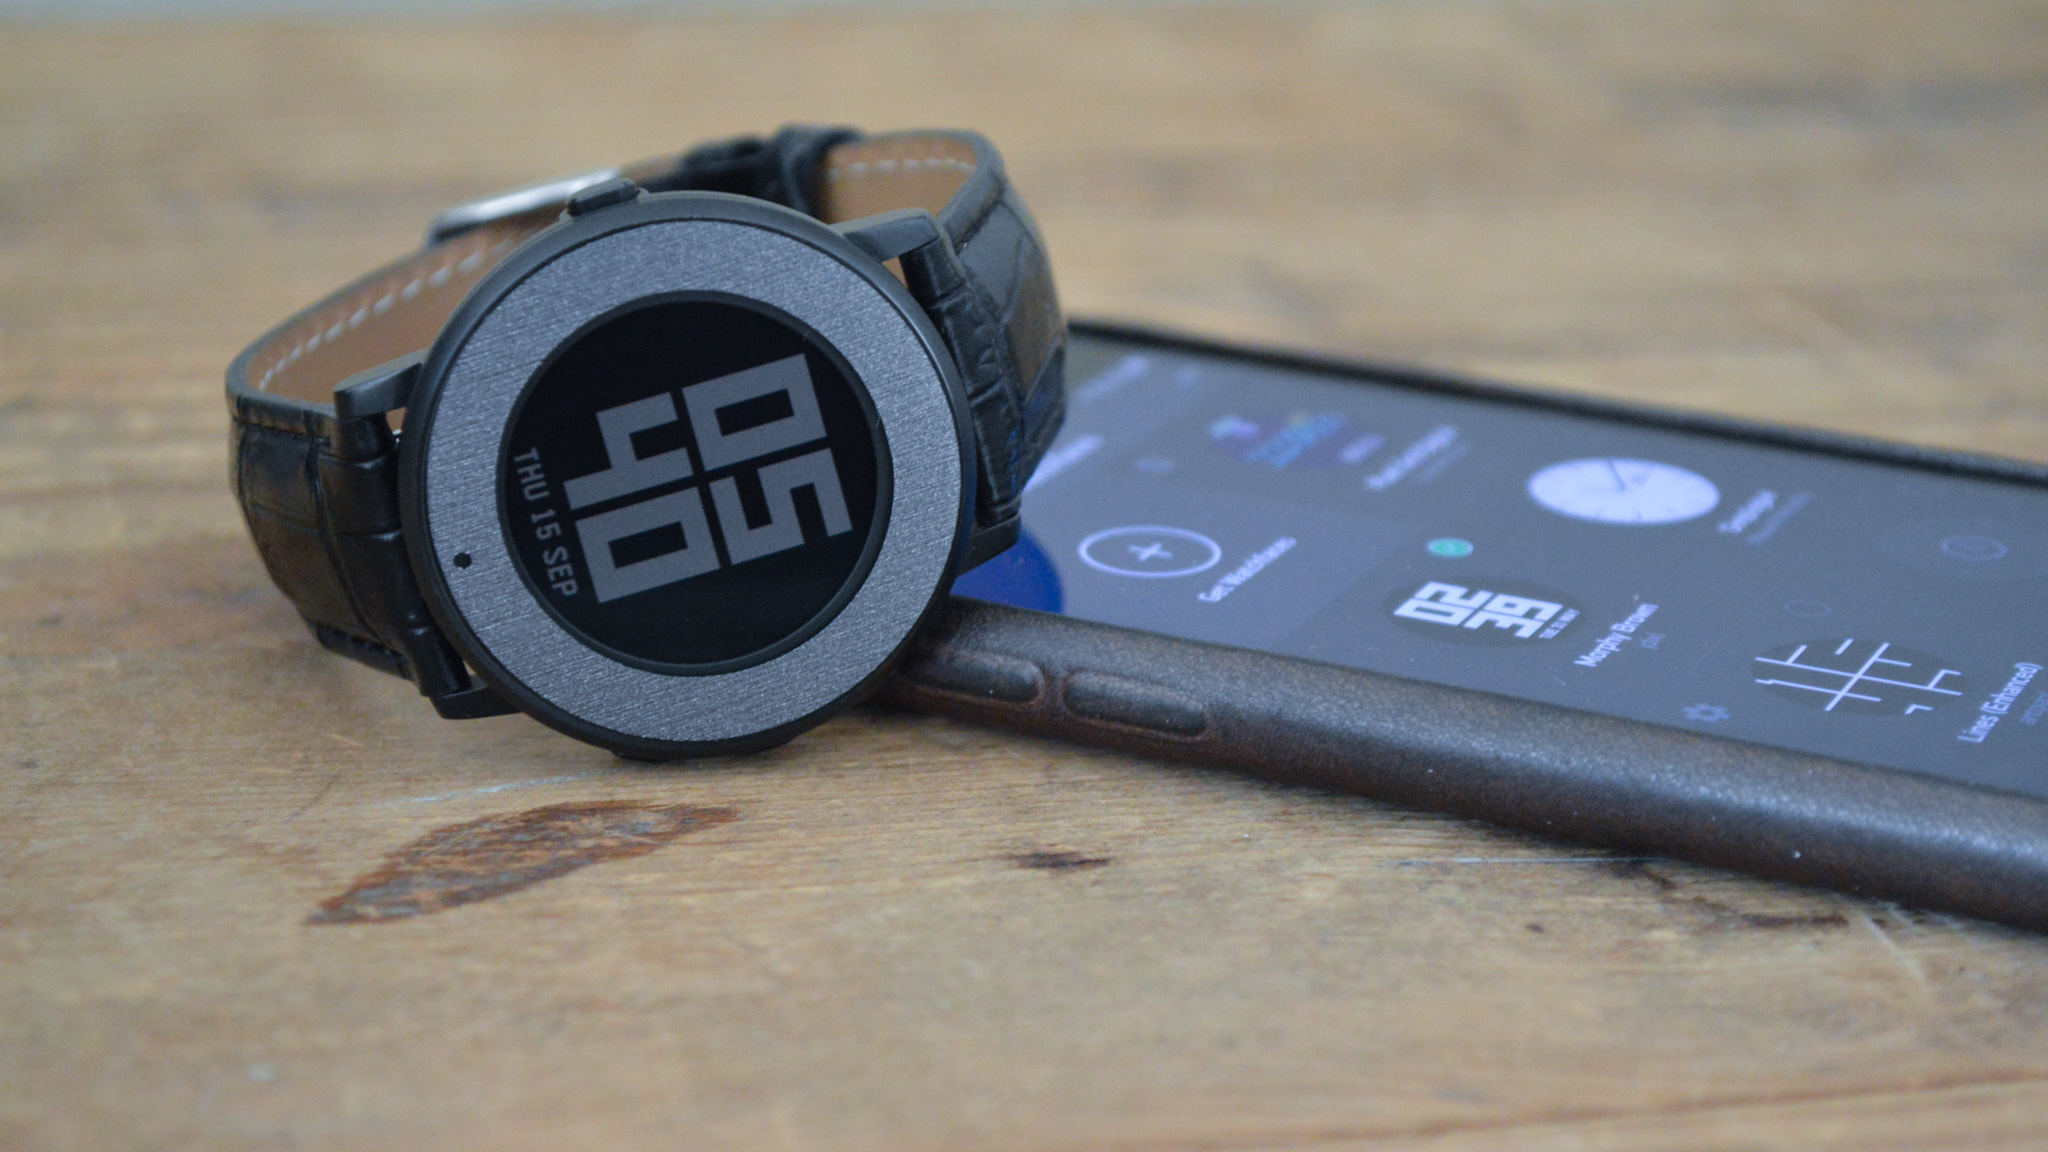 The Best Watchfaces for Pebble Time Round #3